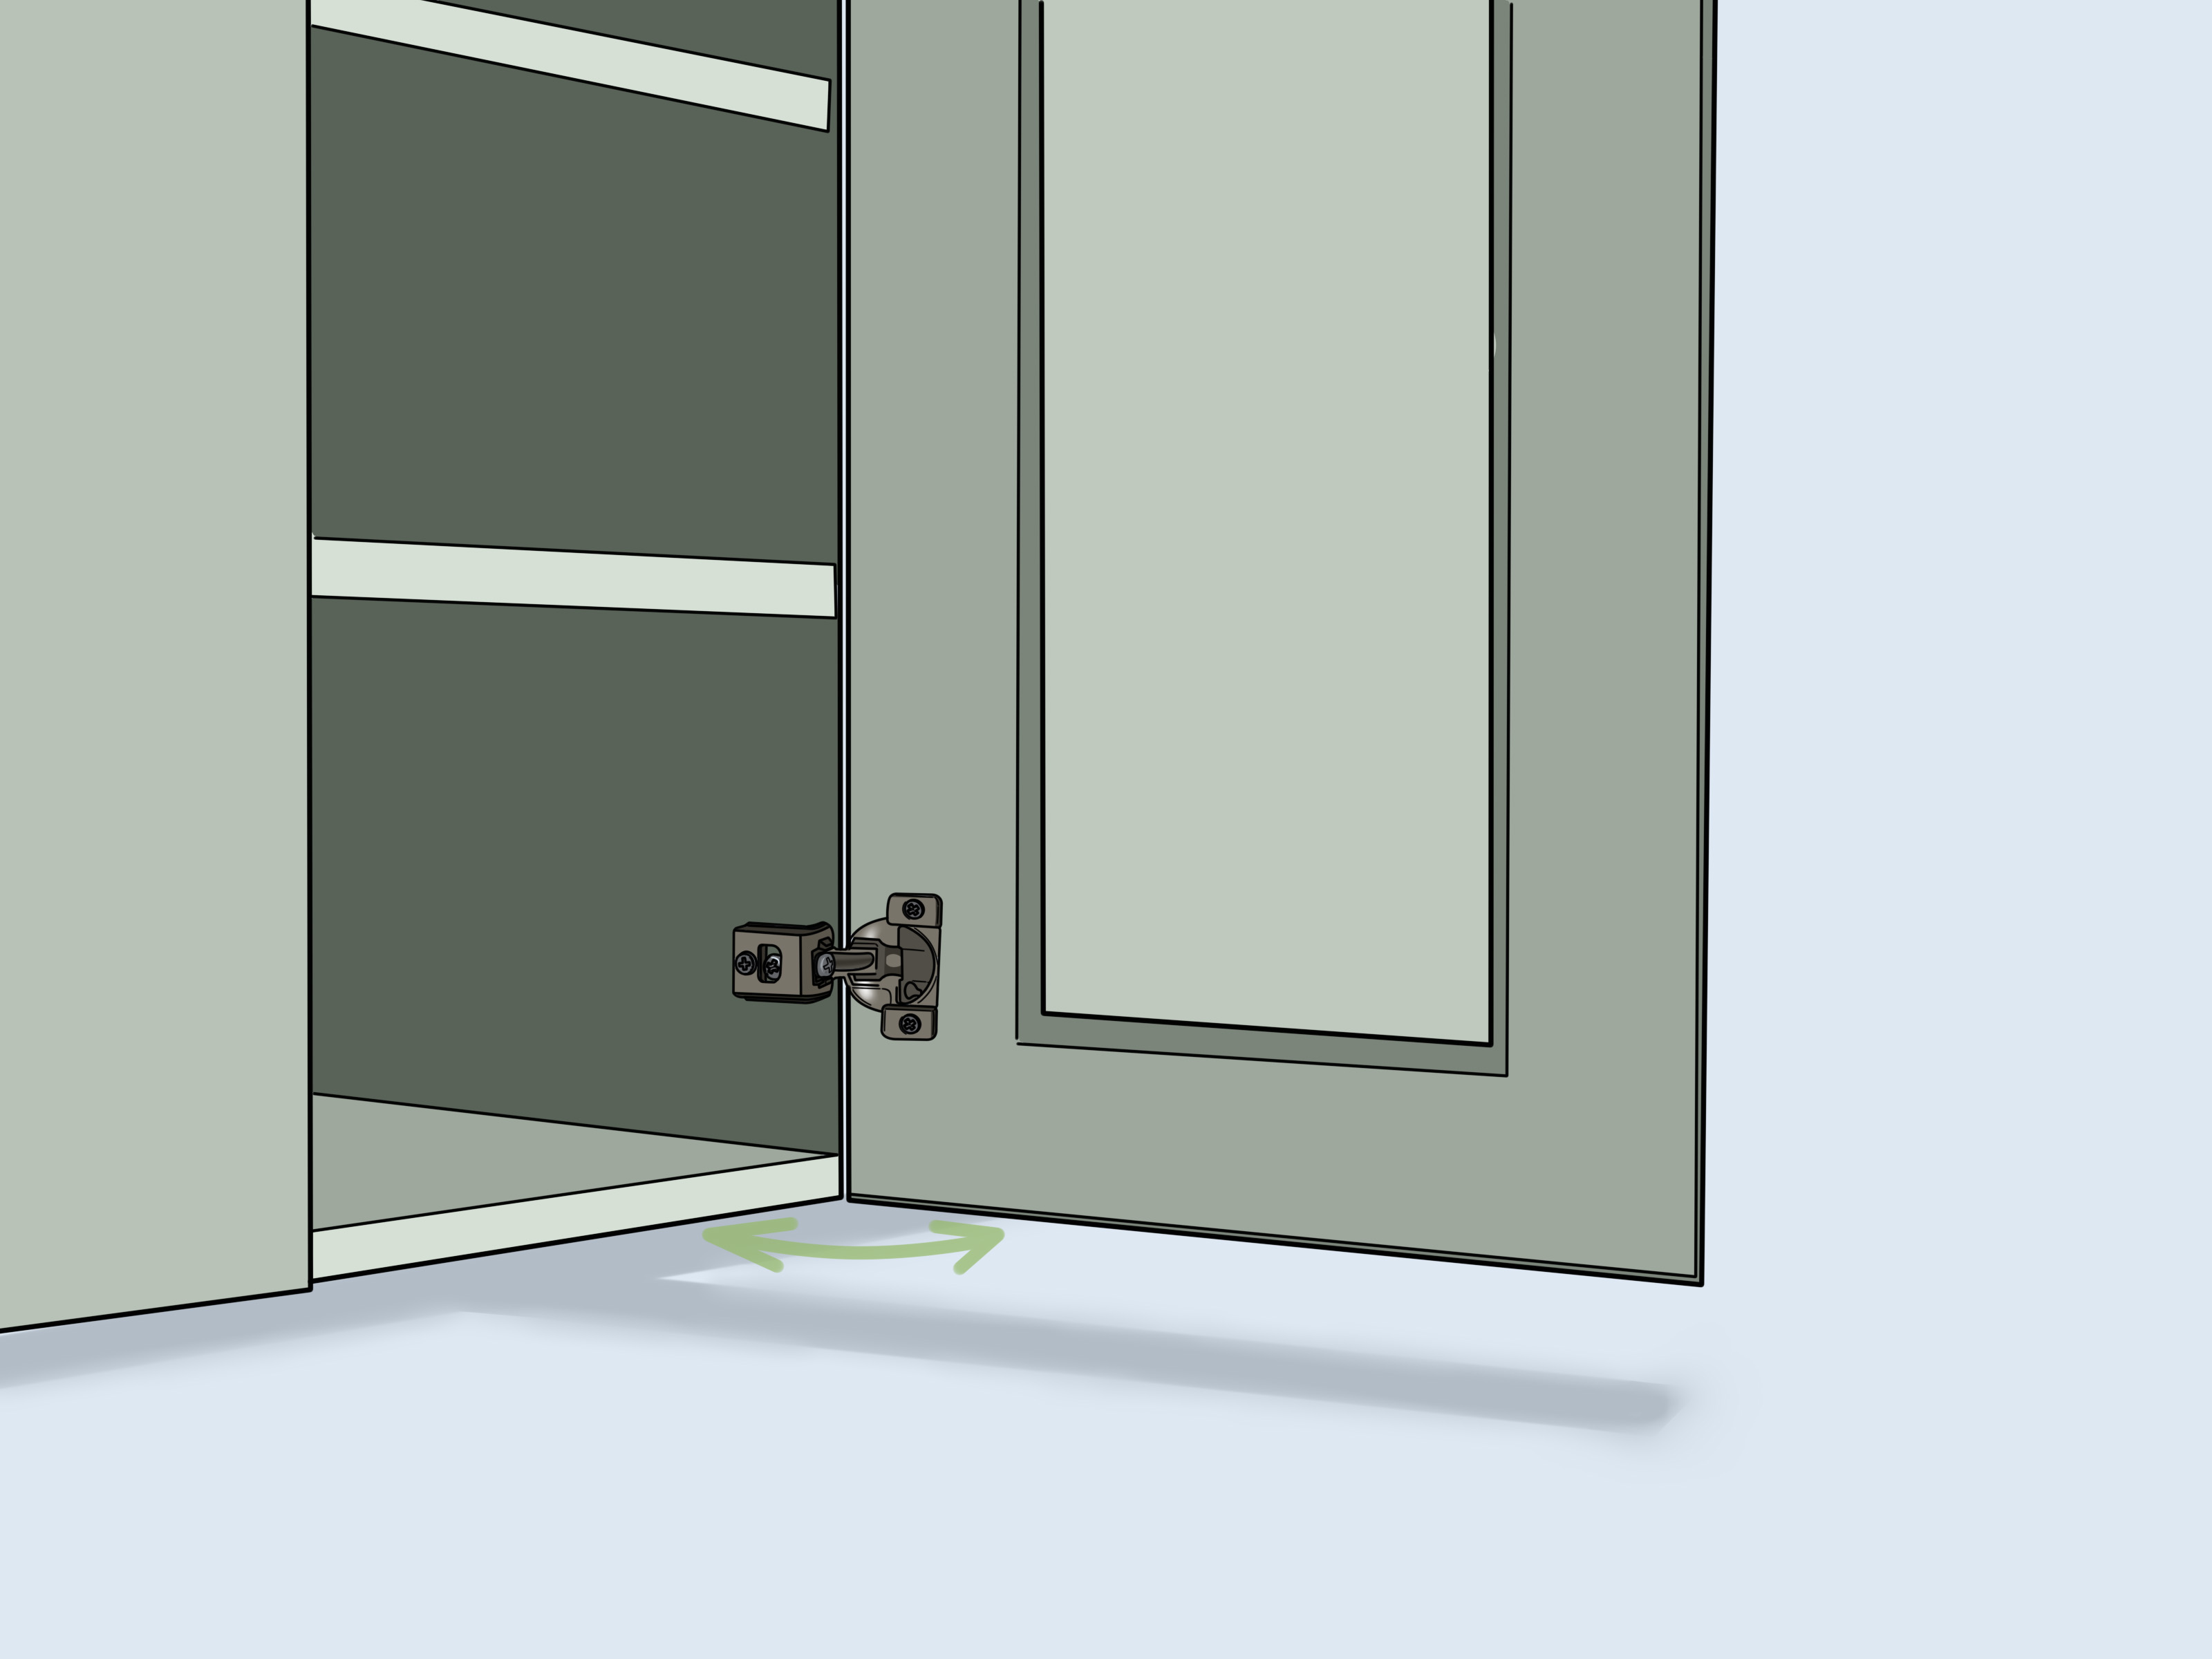 How To Adjust Soft Close Hinges 7 Steps With Pictures Wikihow